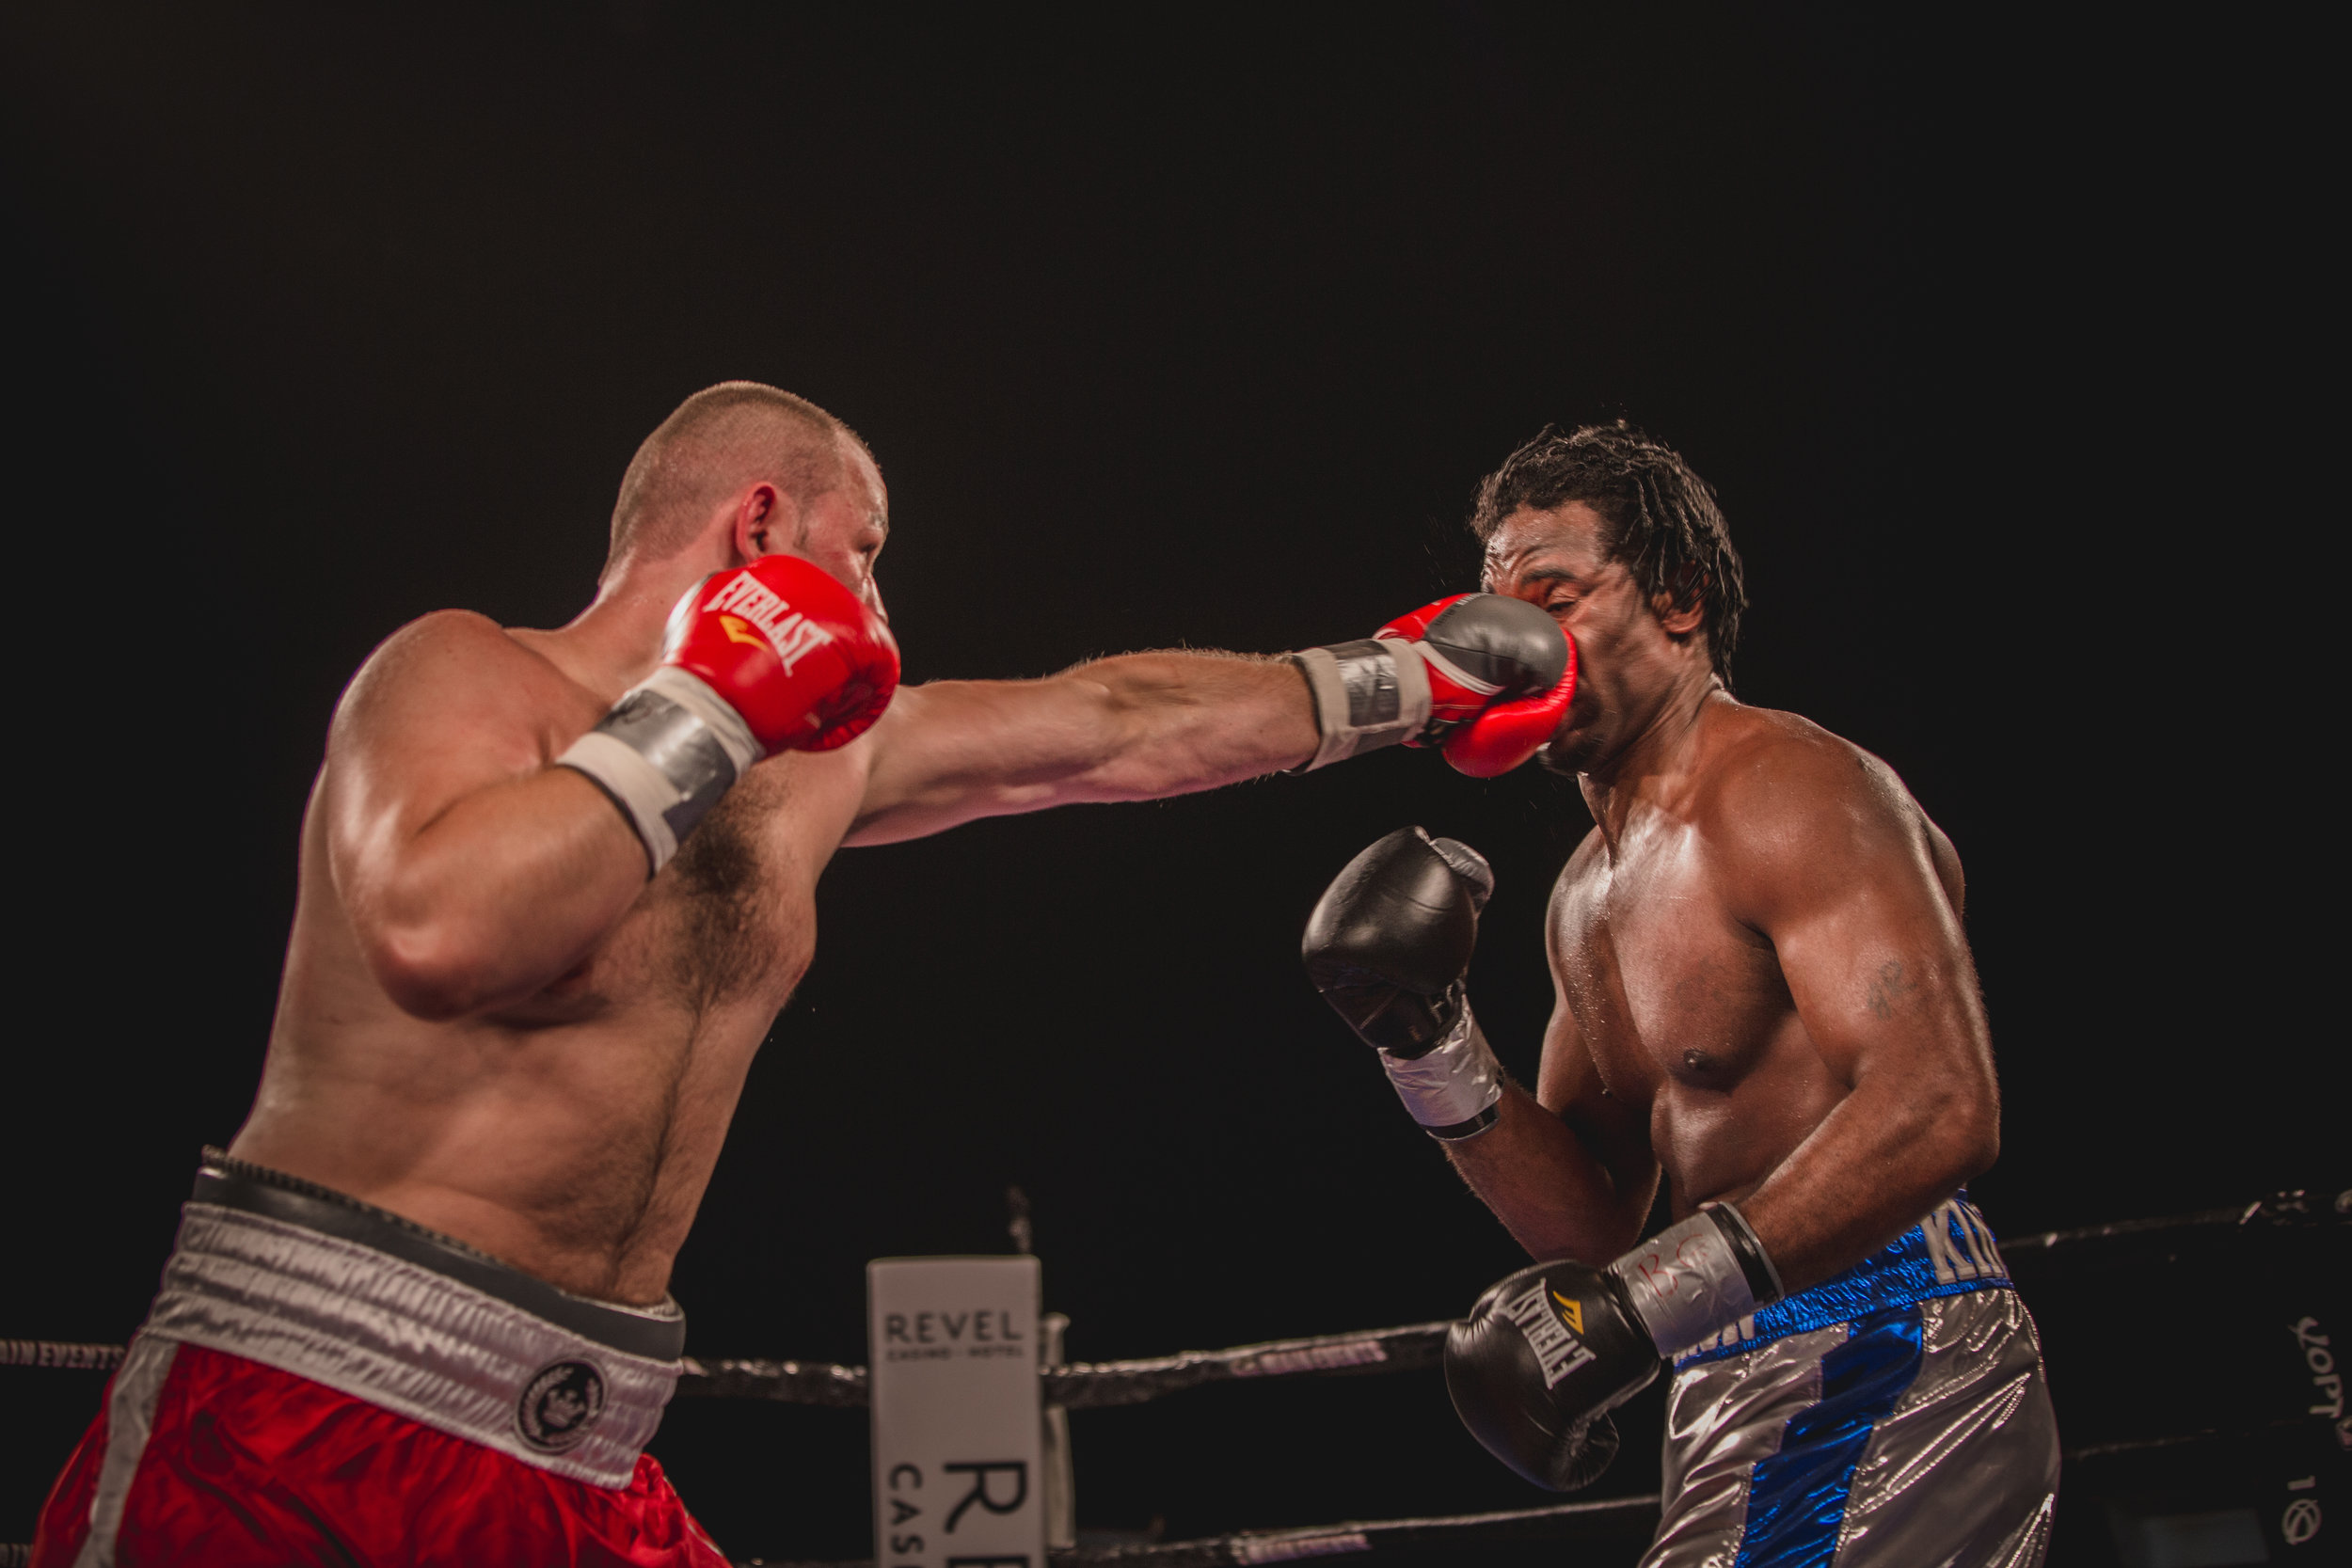 Adam Kownacki vs C.Ellis - photography by Sylwek Wosko (29).jpg